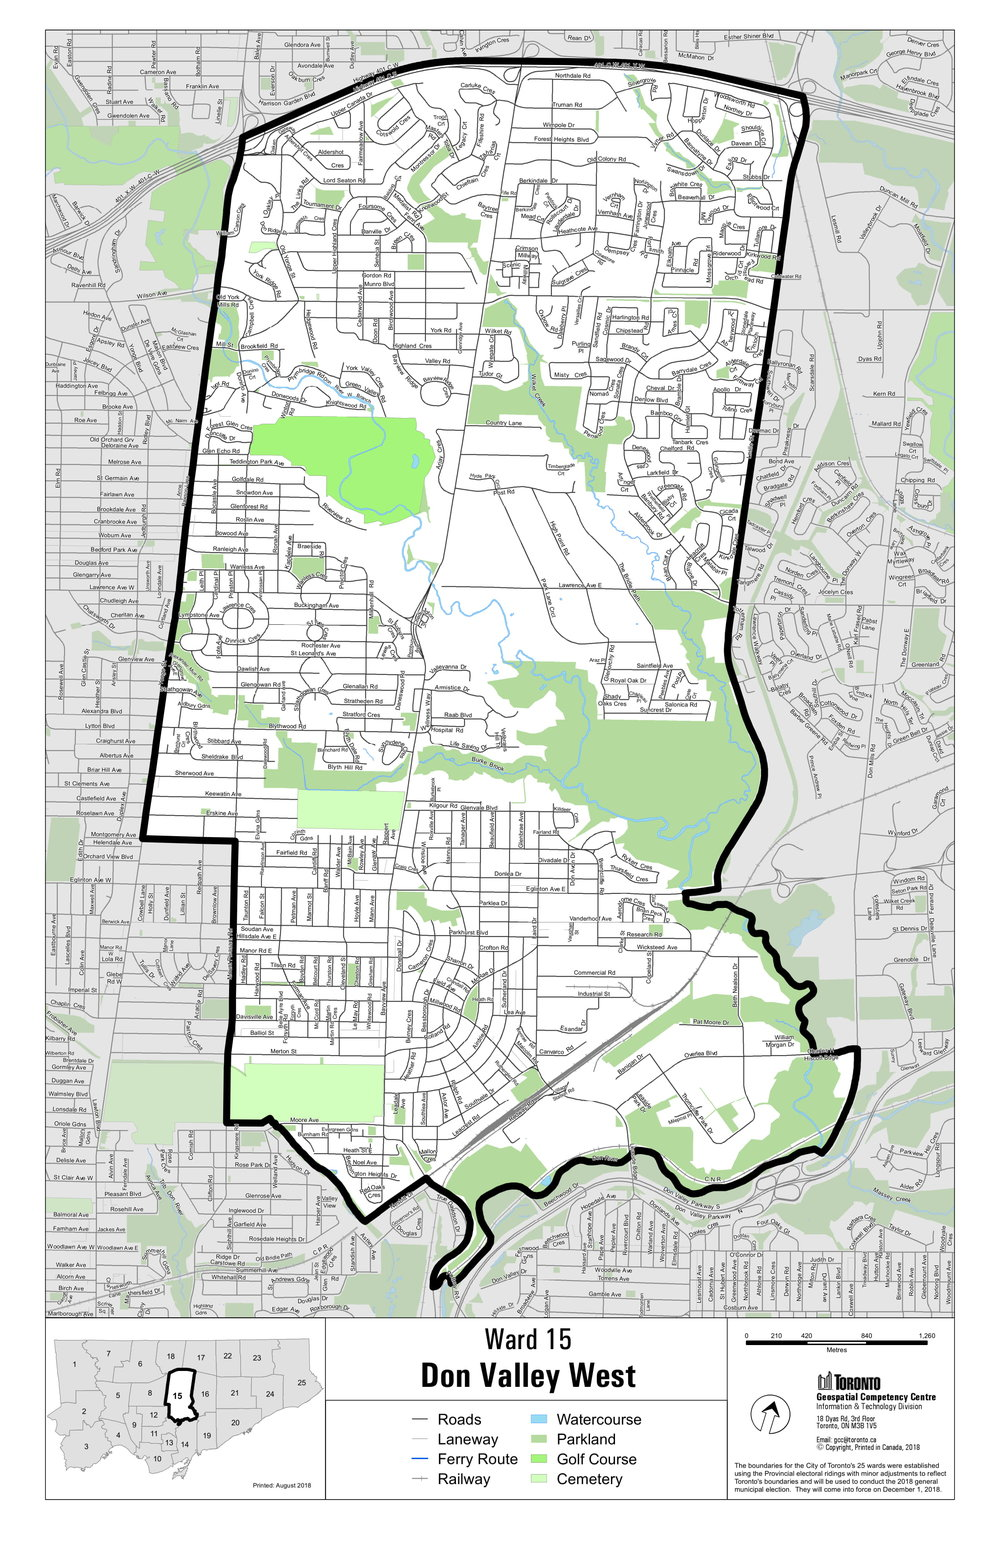 The new Ward 15 boundaries that will be inclusive of the old Ward 25. All new changes will be in place for the October 22, 2018 Municipal Election.